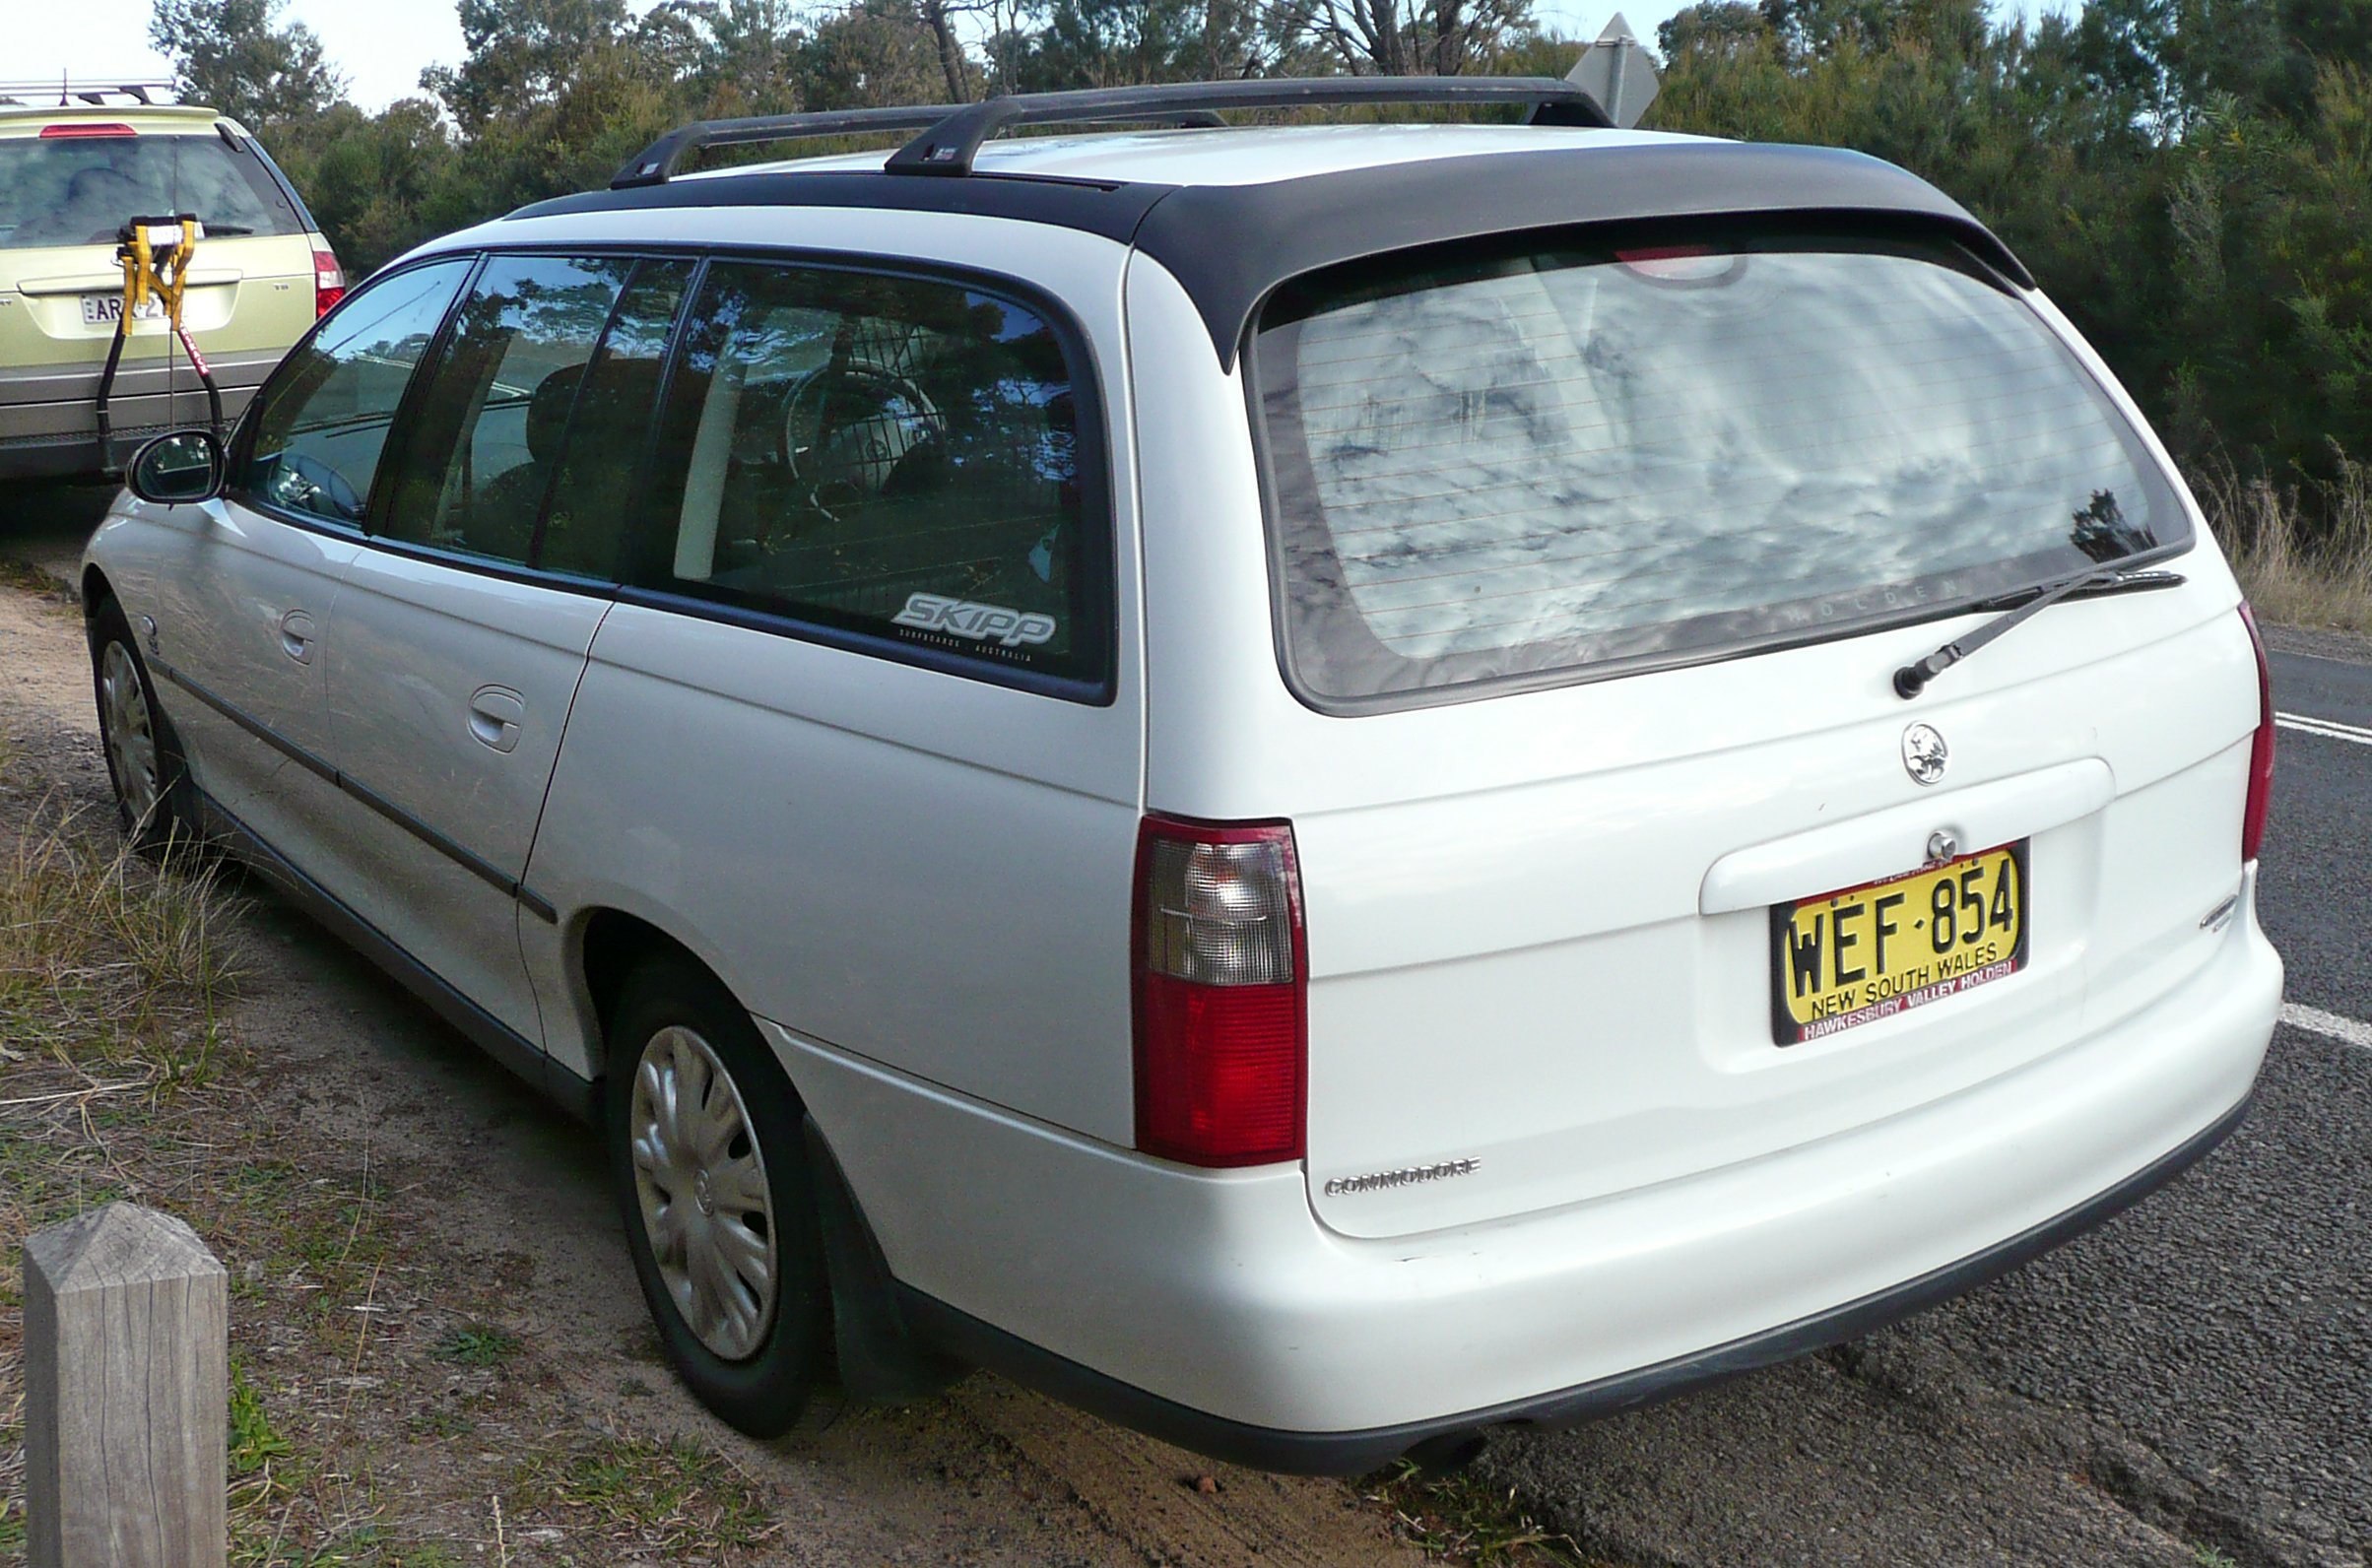 Cars holden commodore wagon (vt) 1999 #4